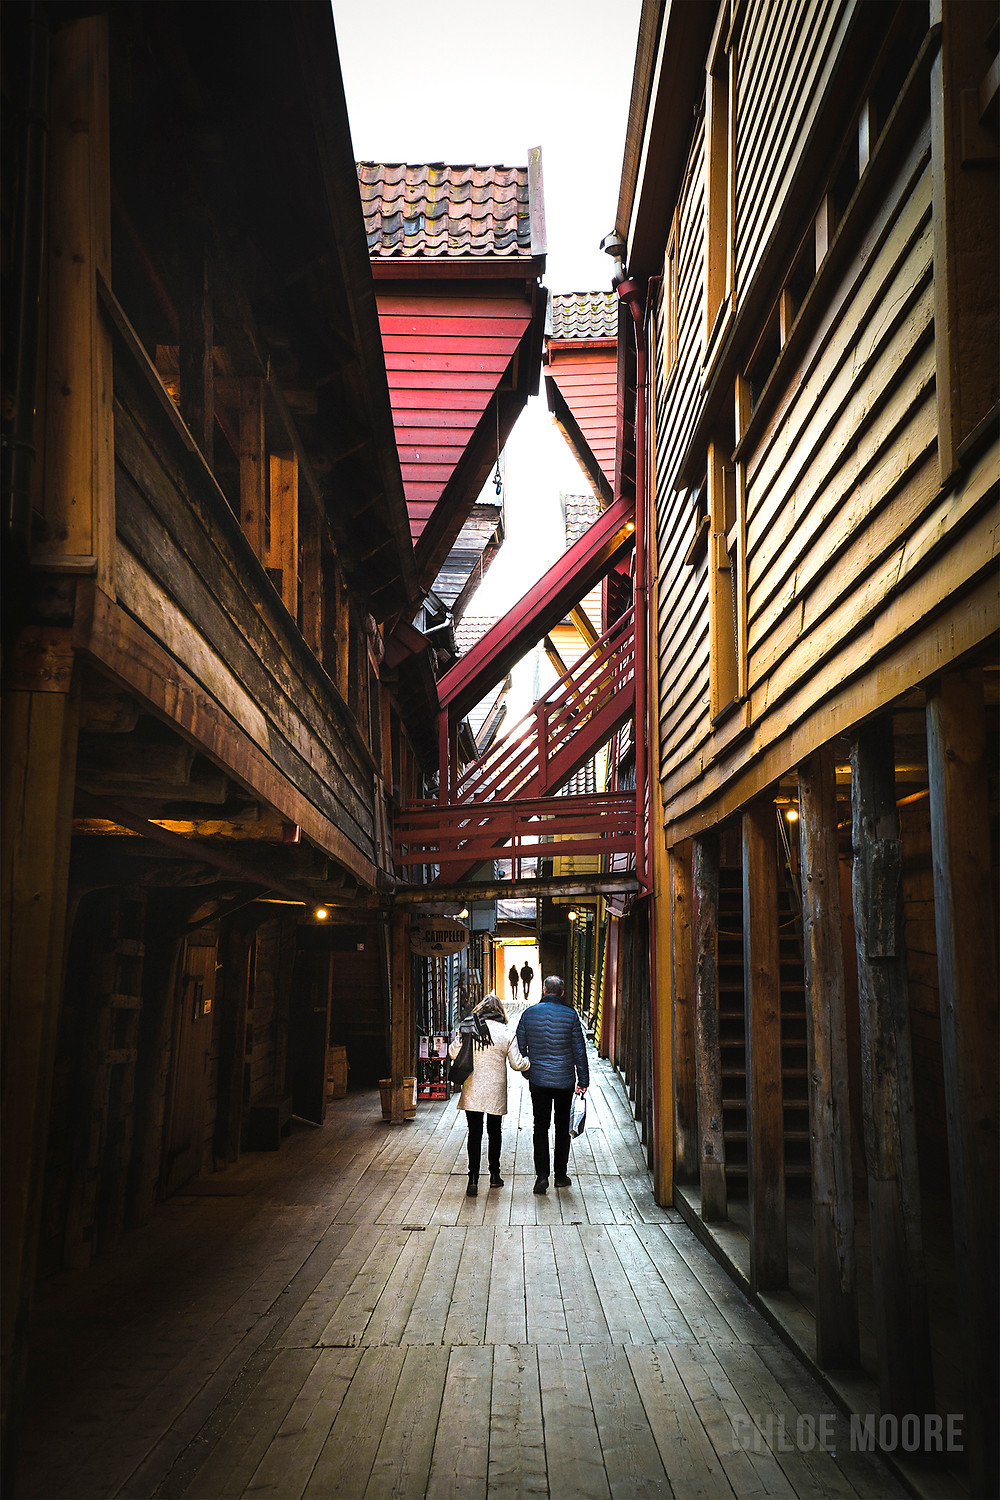 historic unesco world heritage site alleyway. Bergen, Bryggen, Norway